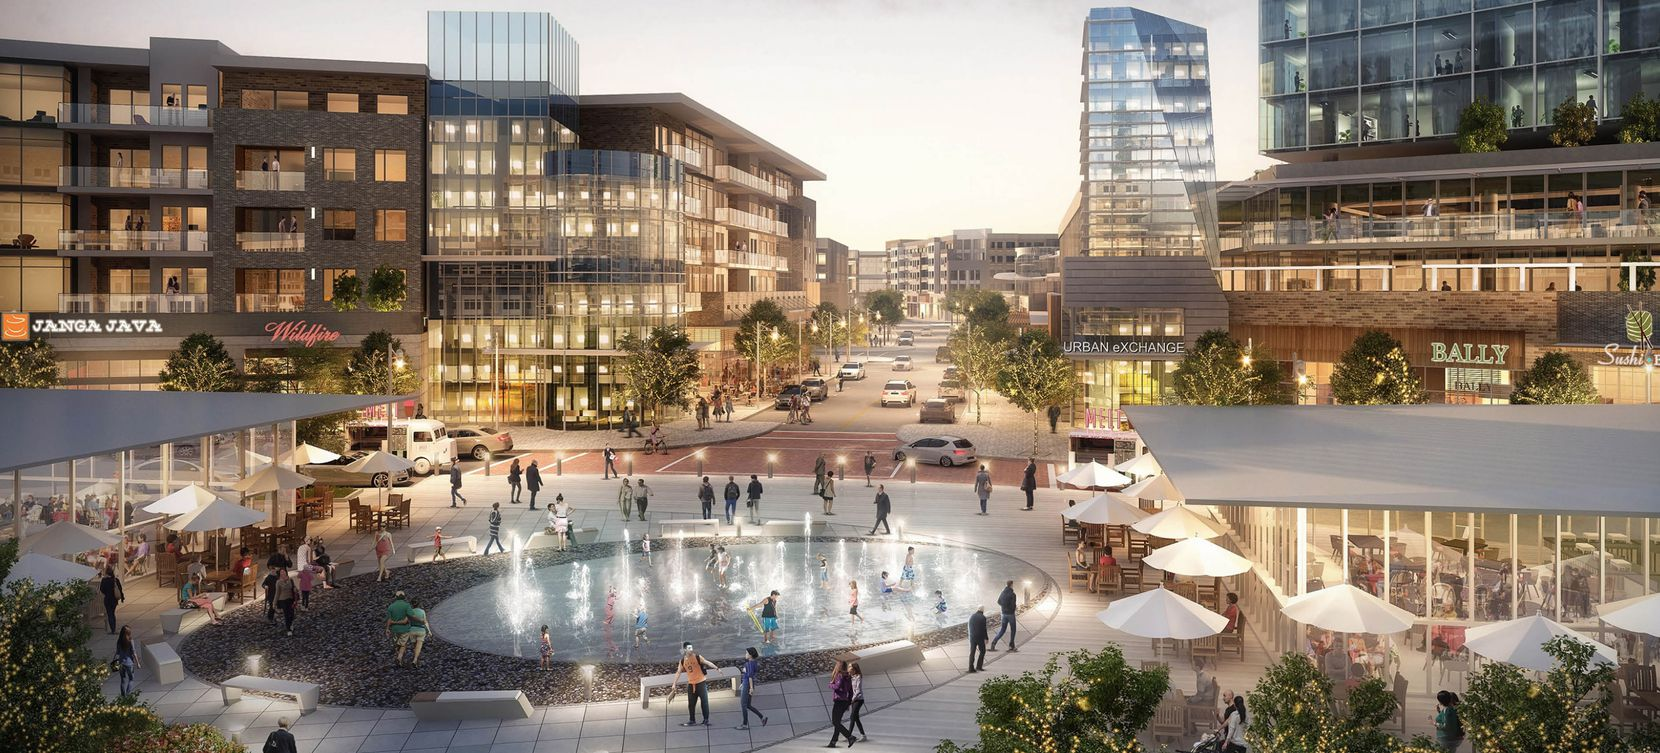 Monarch City was planned as one of North Texas' biggest mixed-use project with offices, retail, hotel rooms and apartments at U.S. 74 and State Highway 121.